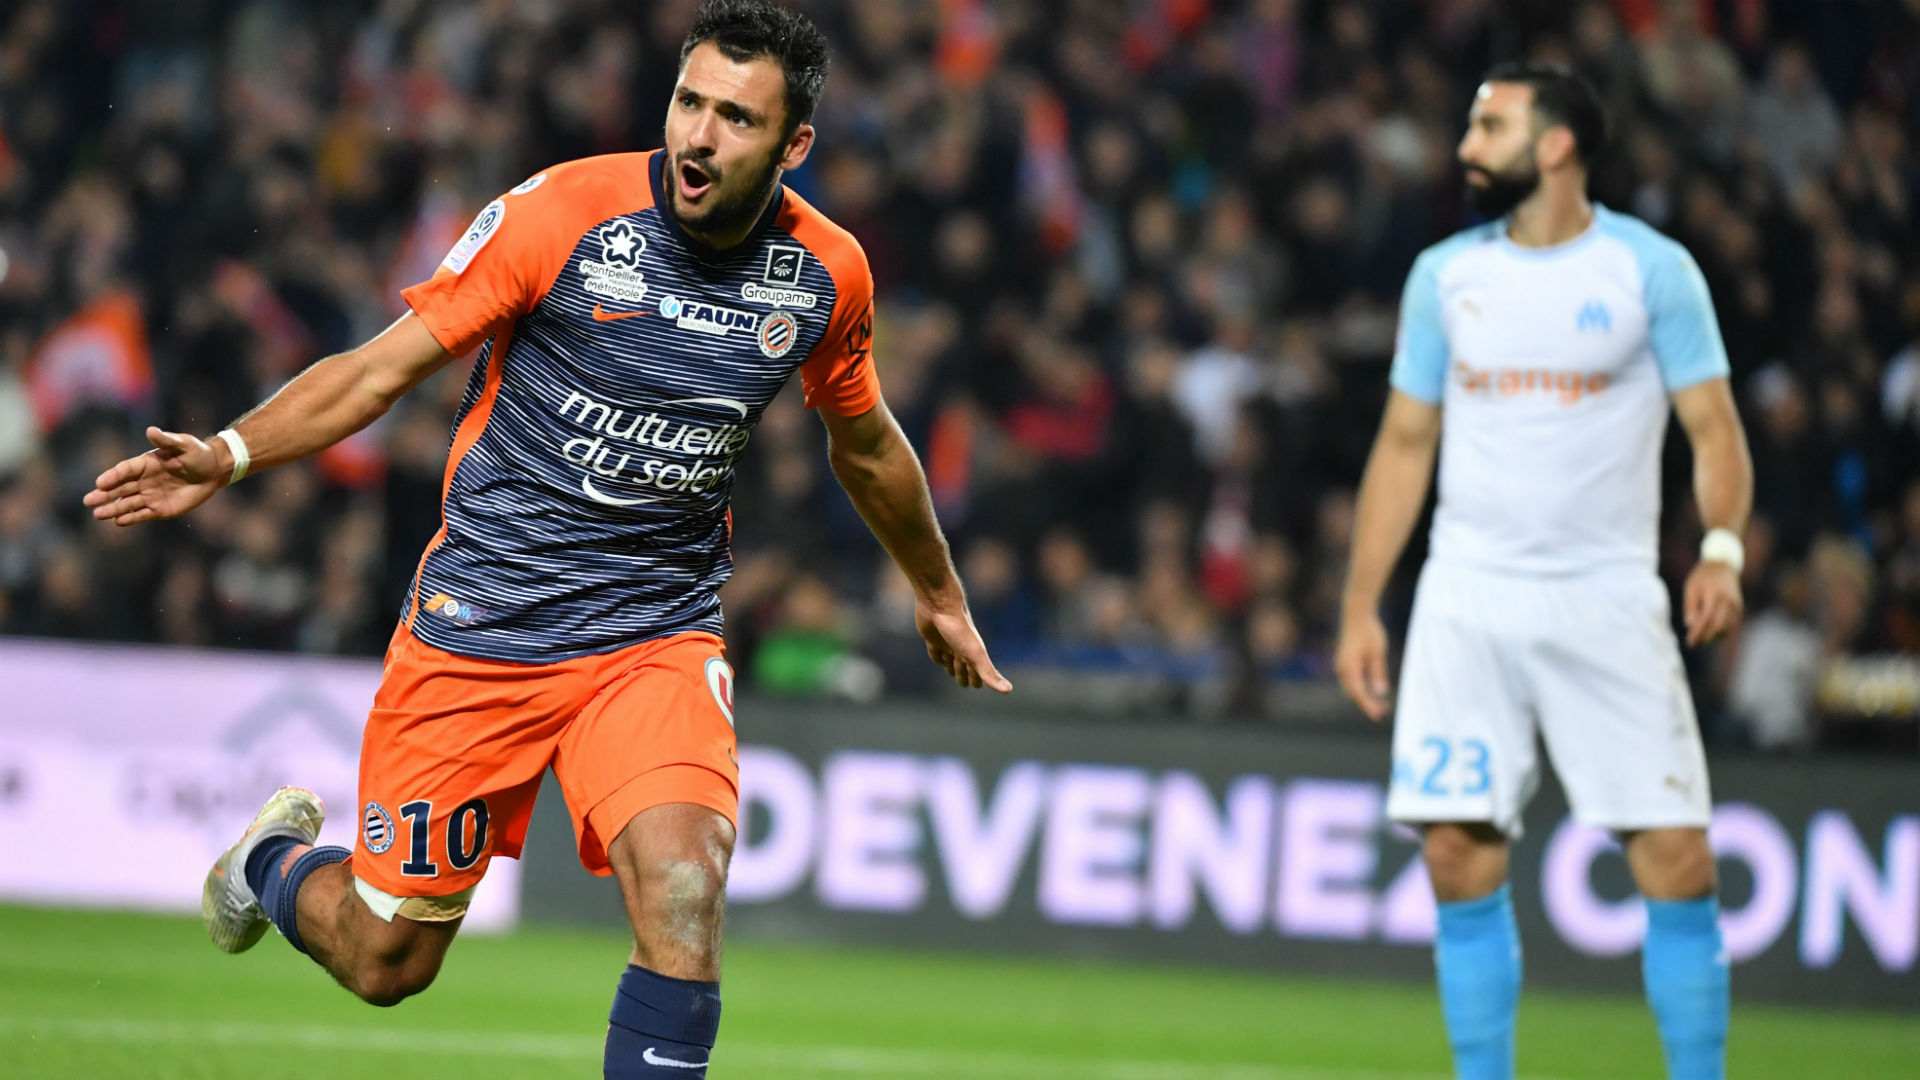 Betting Preview: Olympique Marseille vs. Montpellier: Bulky odds on offer for Michel Der Zakarian's side to avoid defeat